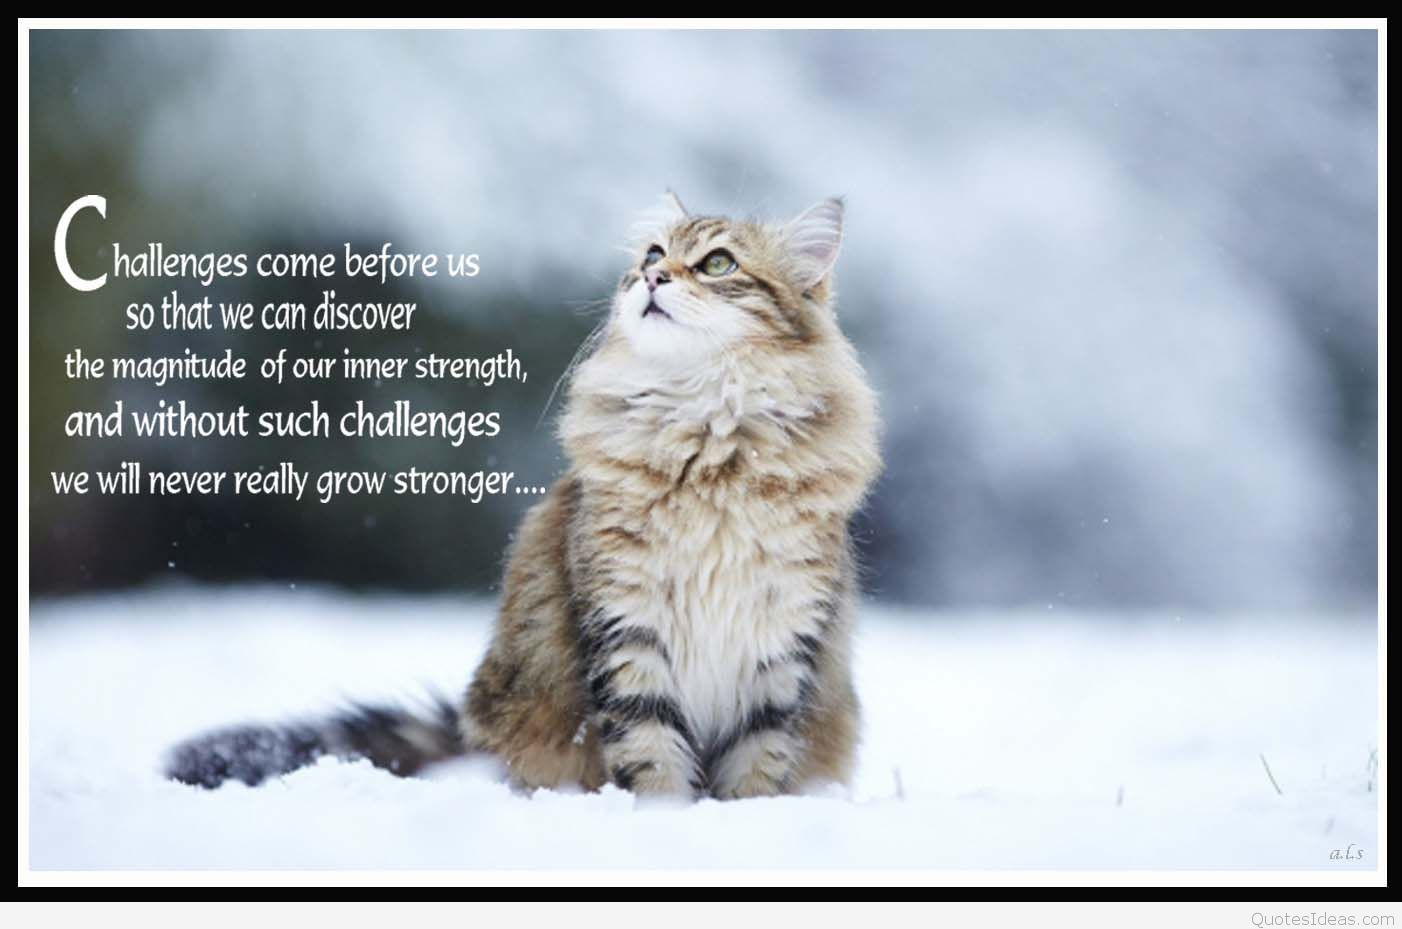 Cat Quotes Entrancing Winter Images With Quotes  Google Search  Winter  Pinterest